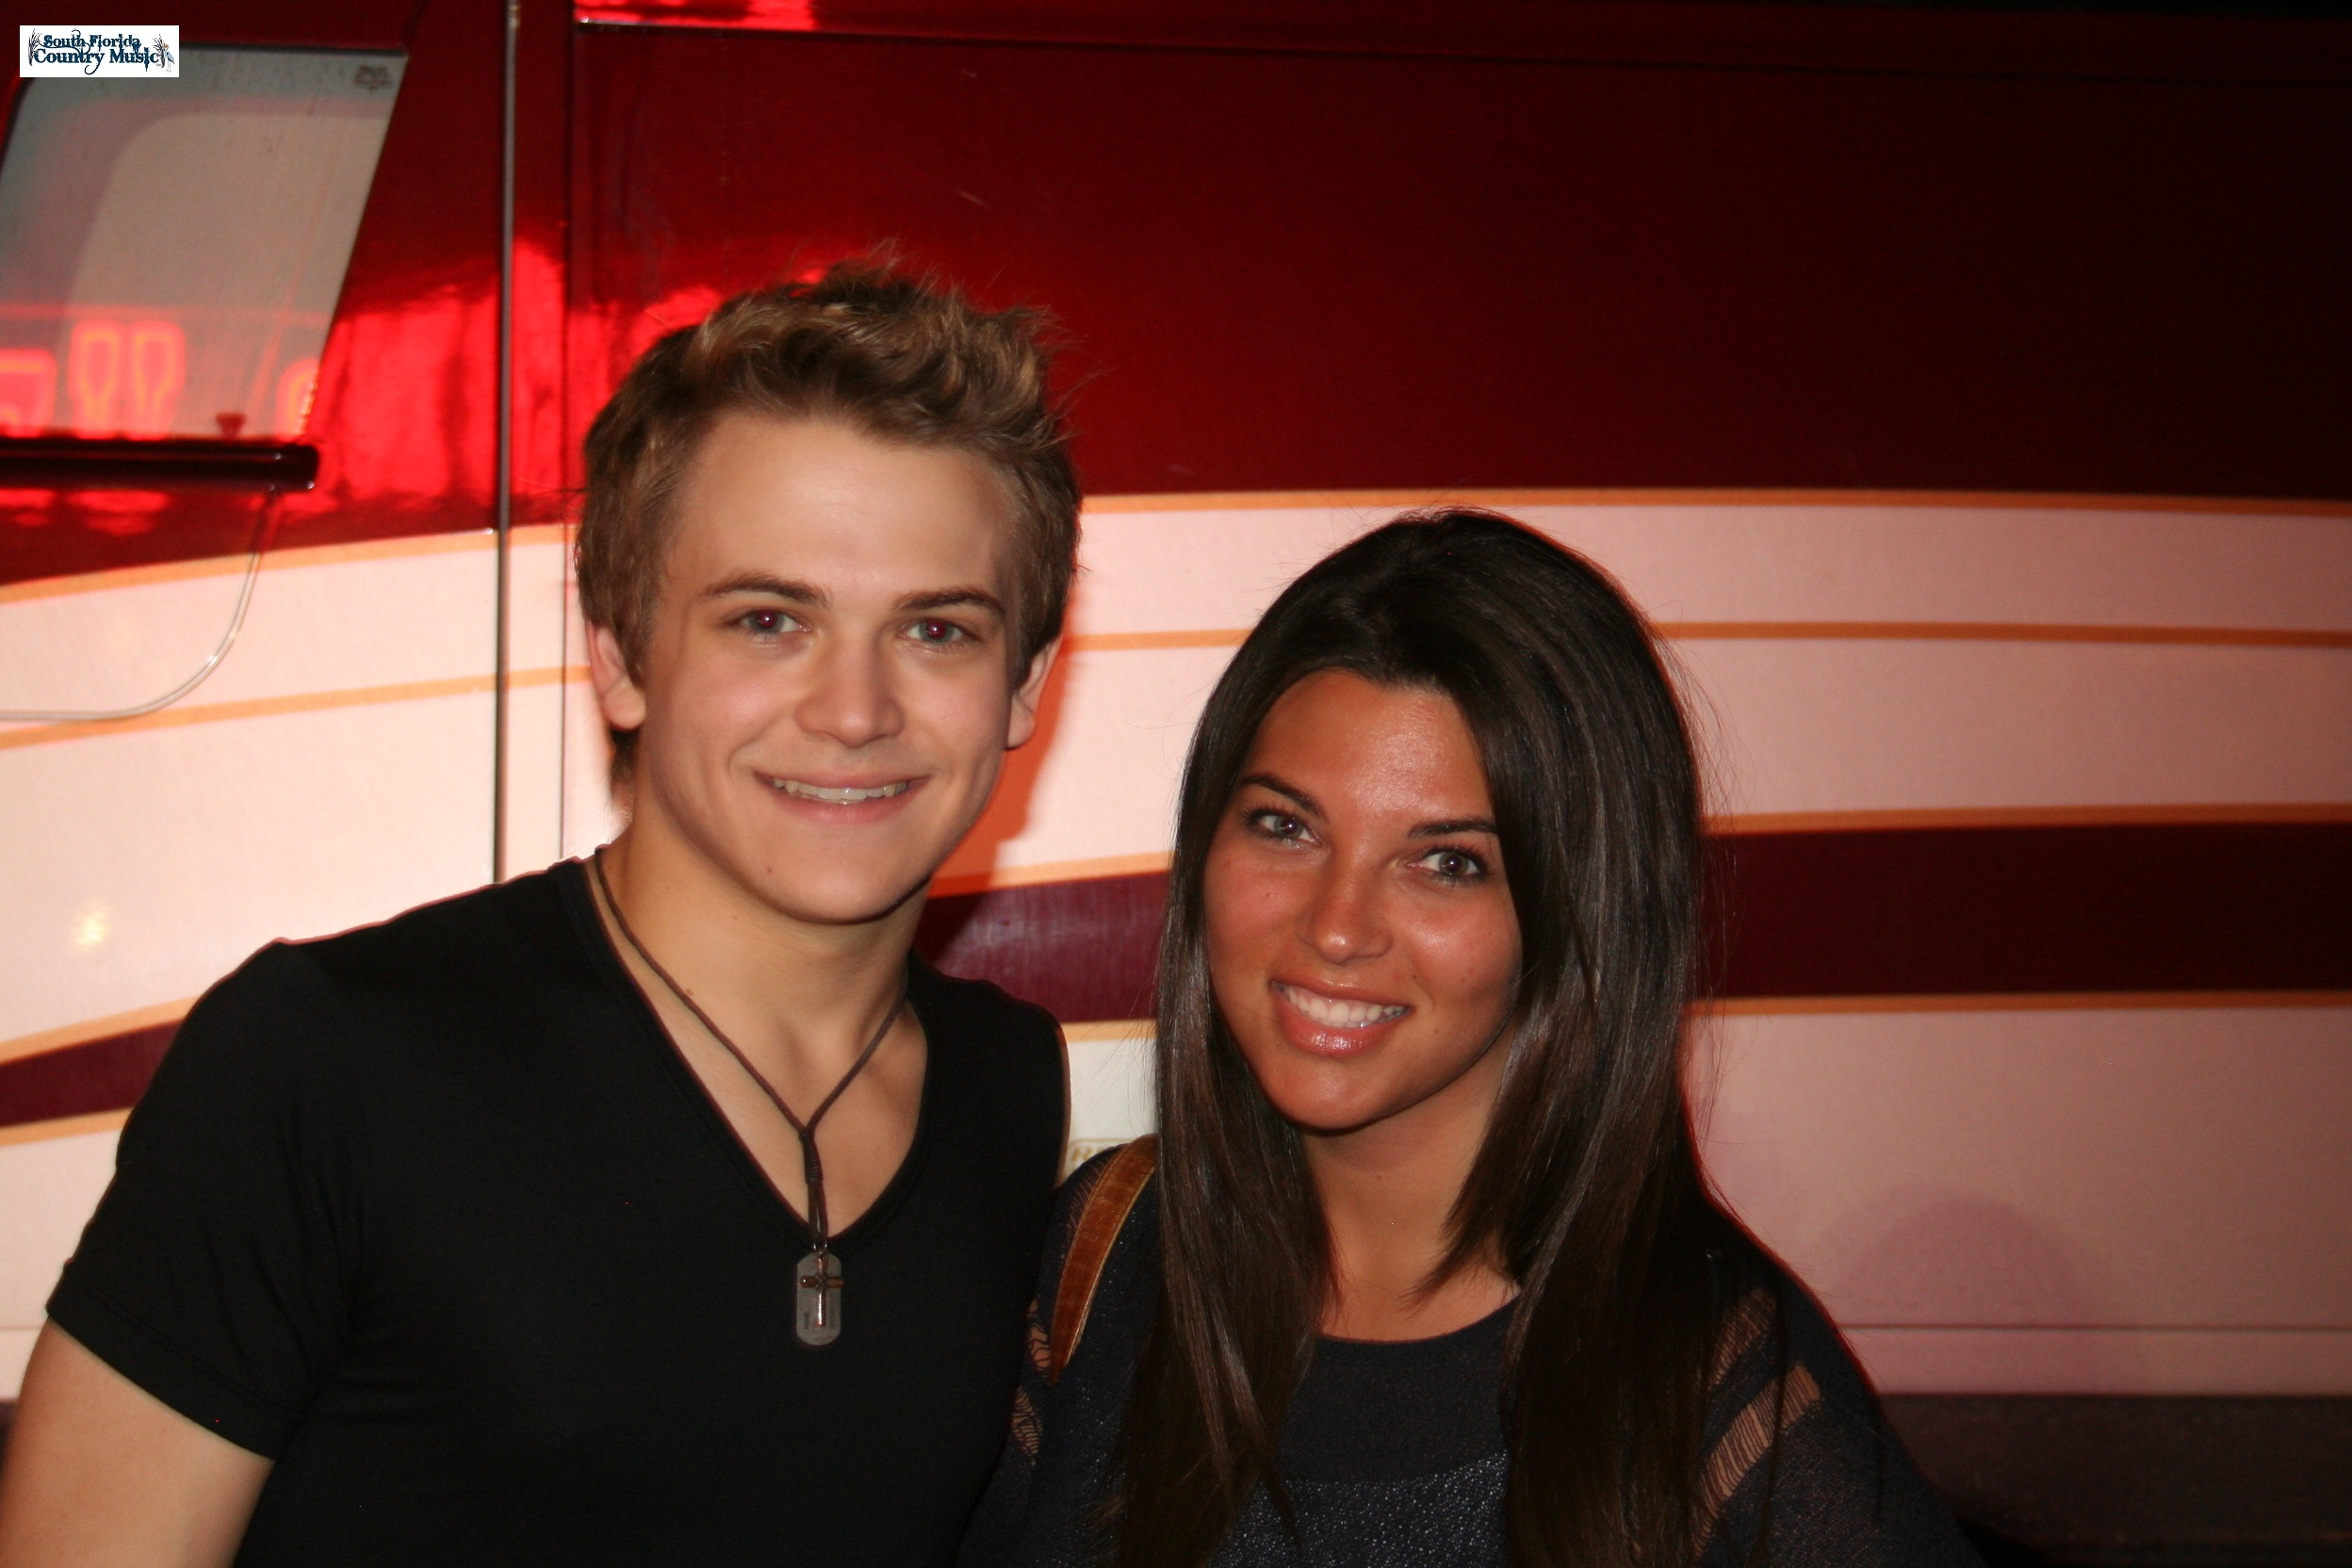 Photos meet greet w hunter hayes south florida country music photos by leslie paczosa kristyandbryce Images